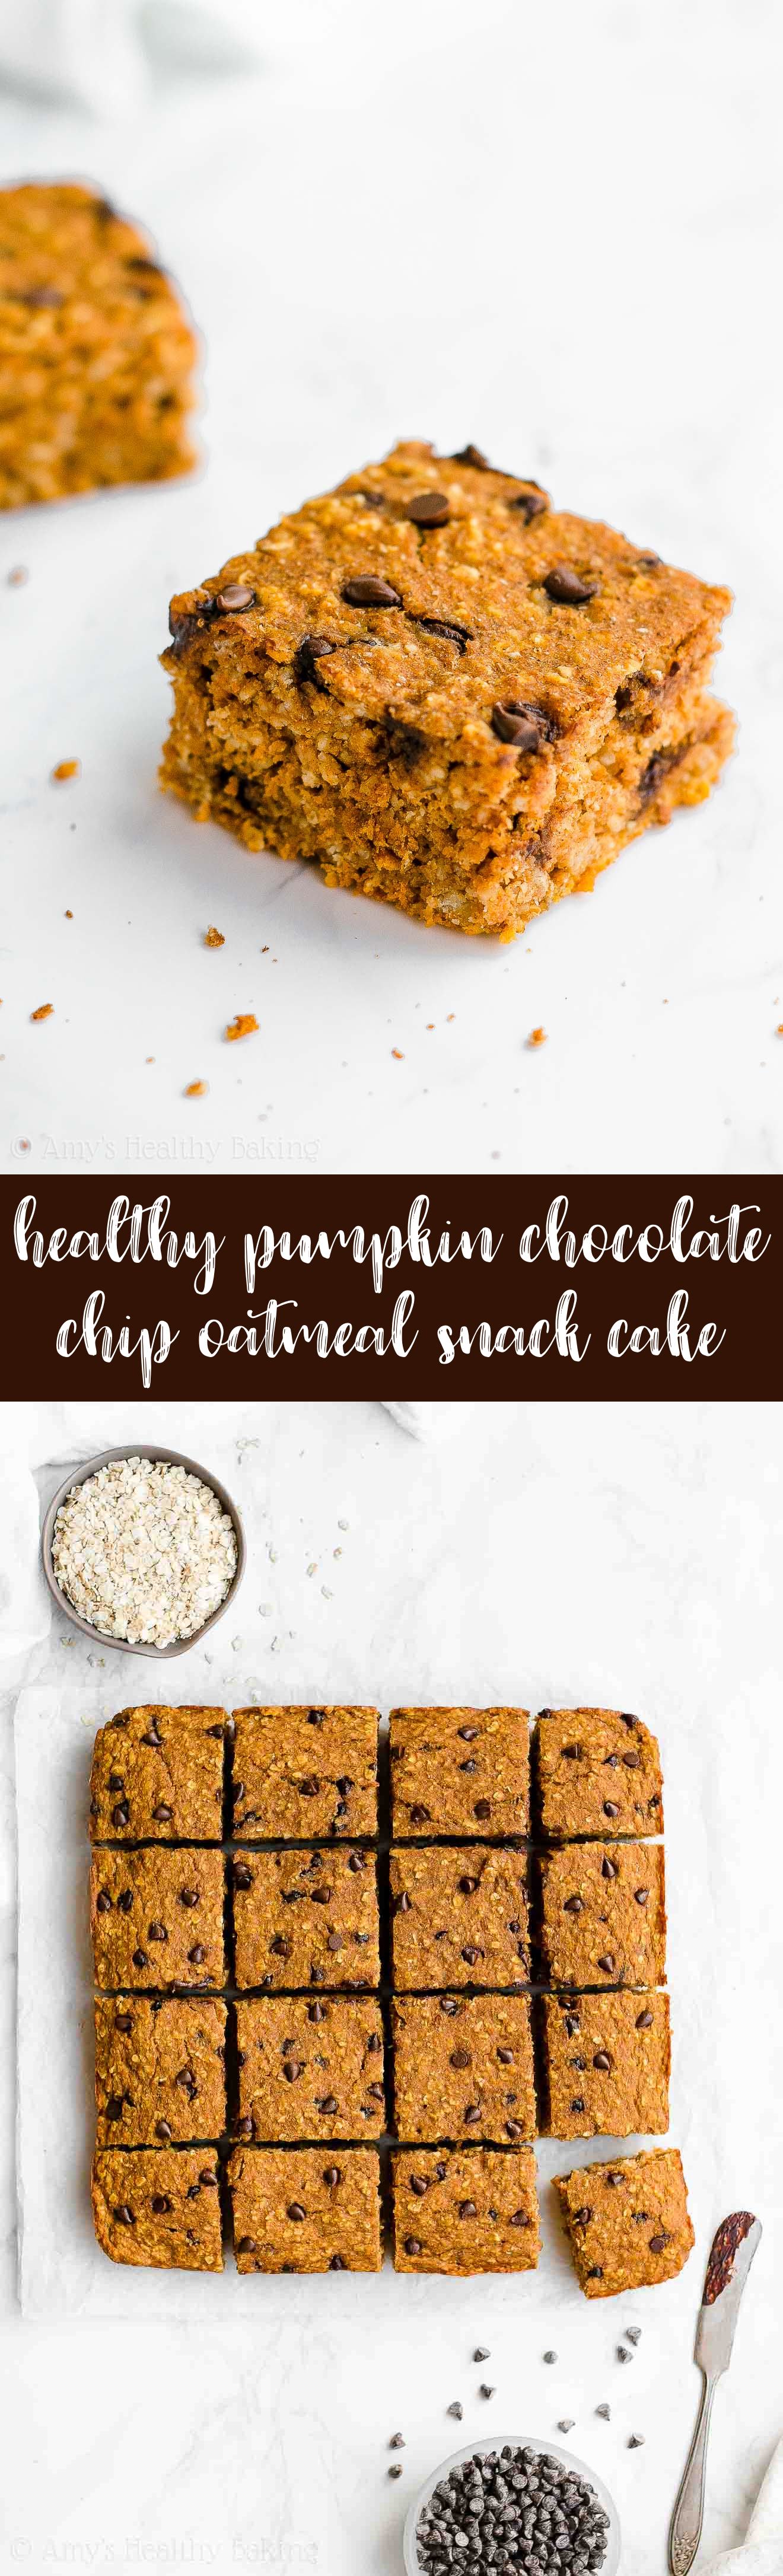 Best Ever Easy Healthy Pumpkin Chocolate Chip Oatmeal Snack Cake